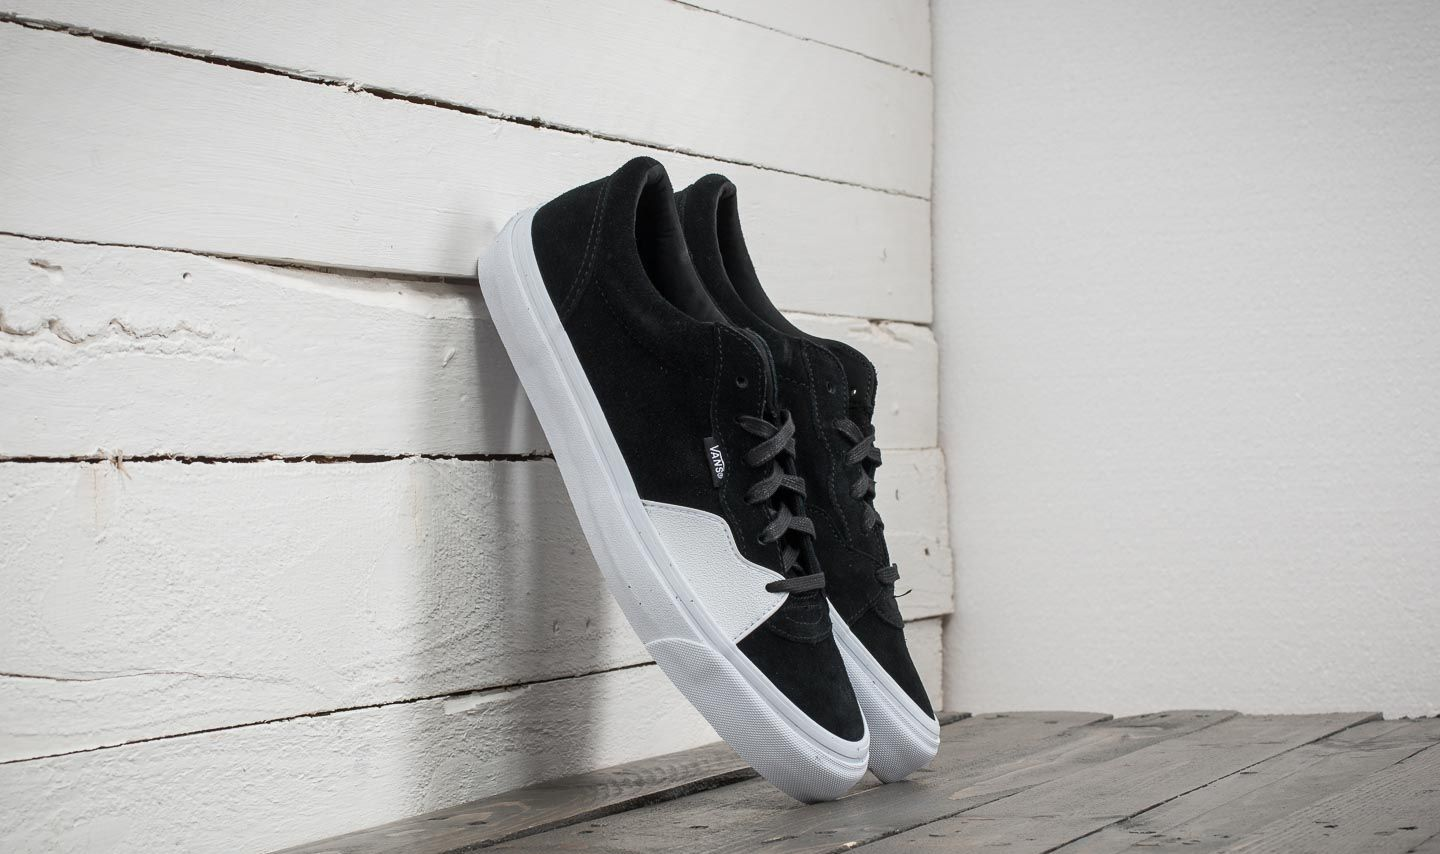 Vans Style 205 Dipped Dress Blues & White Sneakers